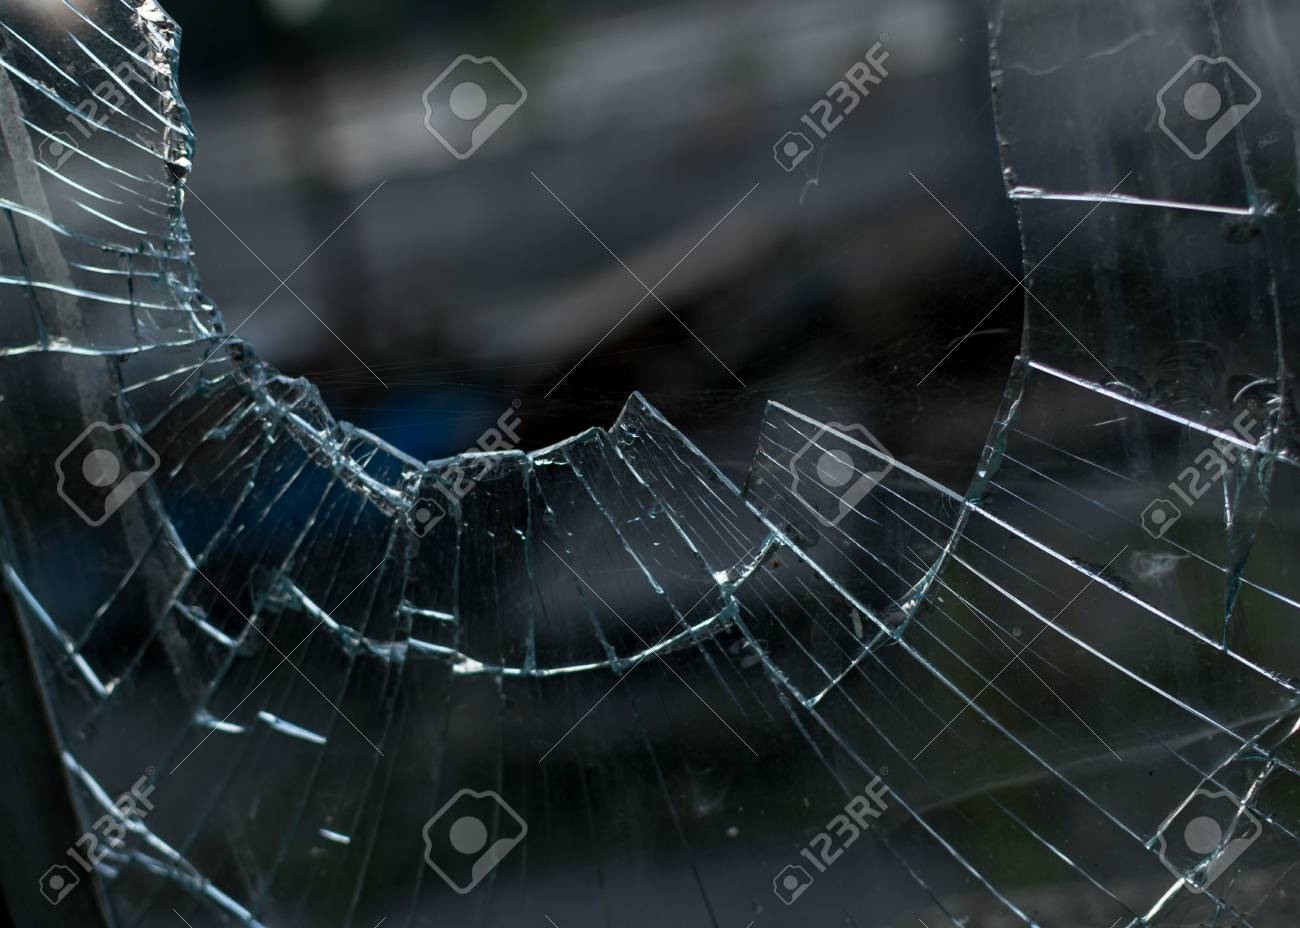 Closeup shot of a smashed broken glass window pane with a very blurred background and a disturbing viewing angle - 45132980